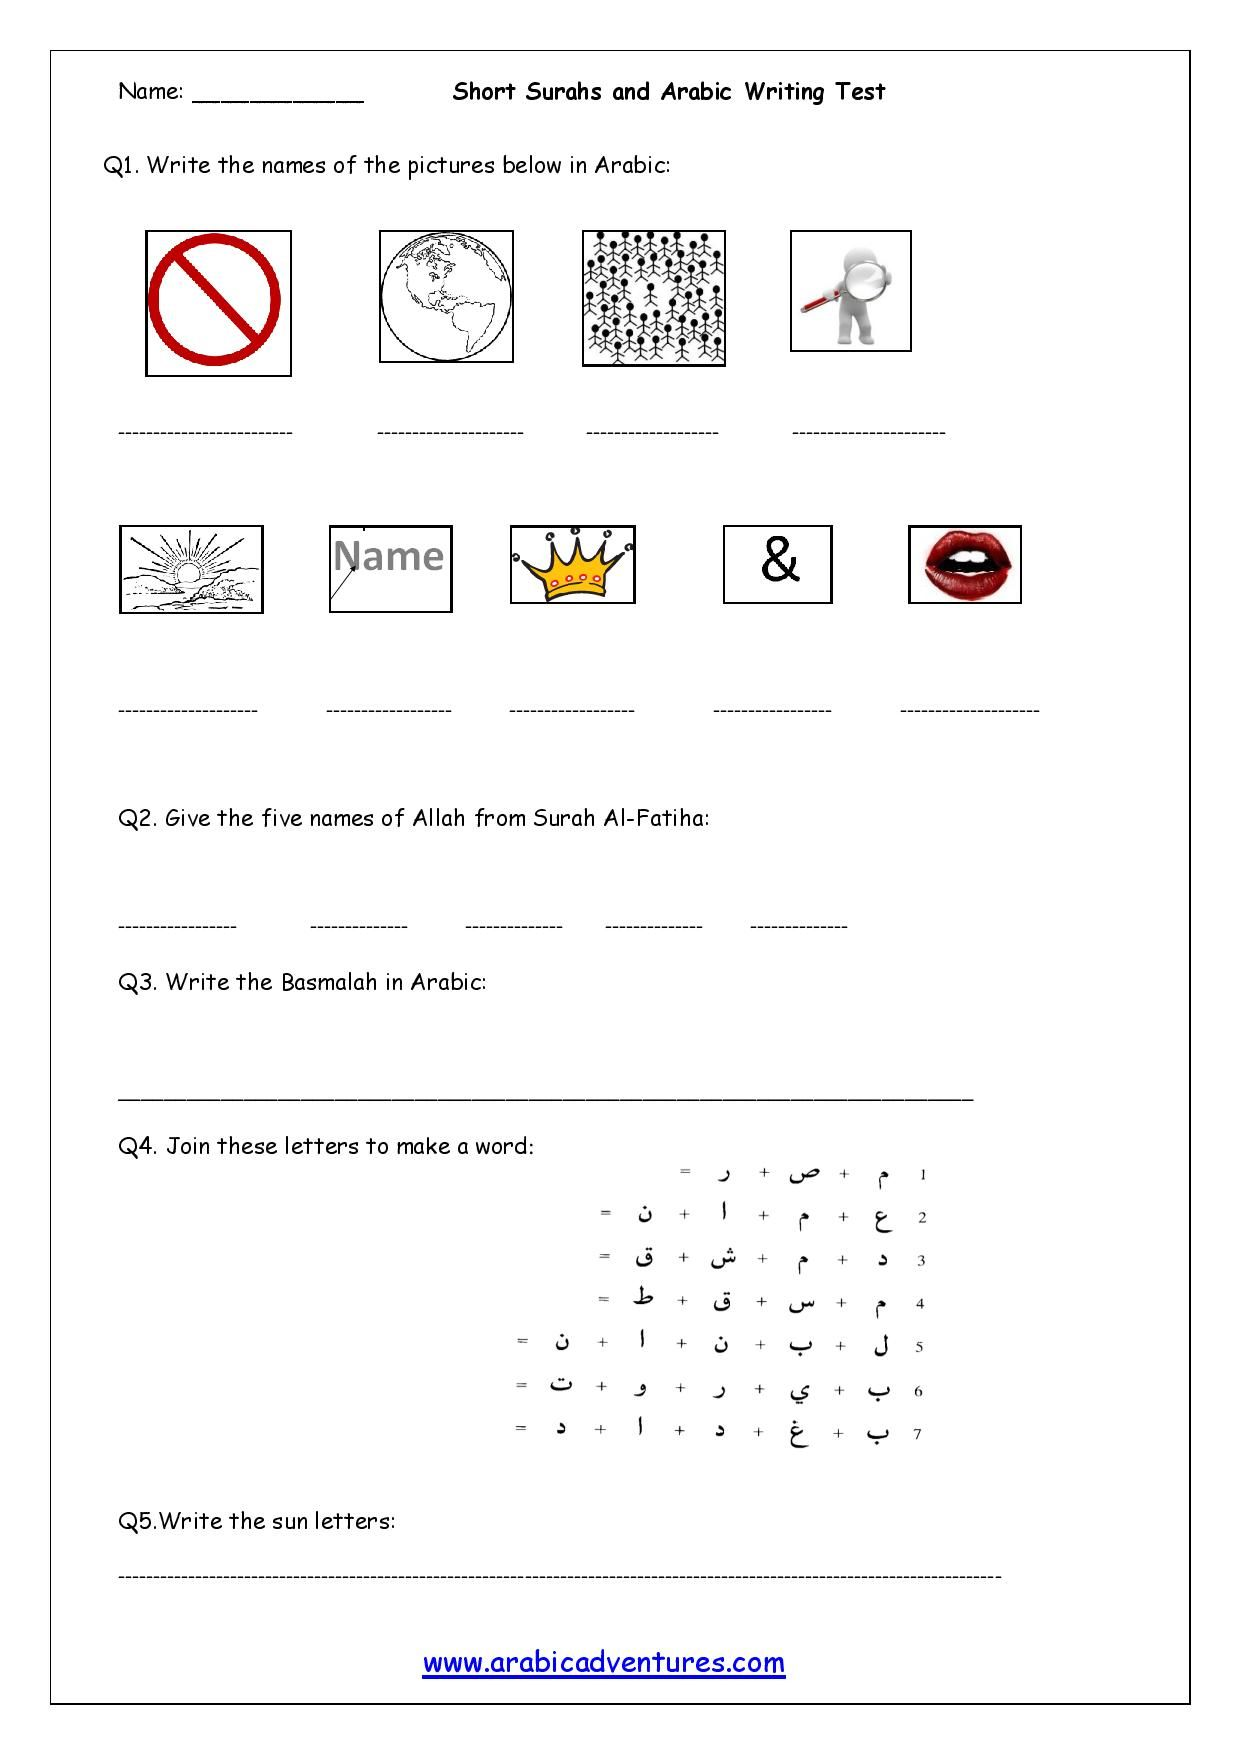 worksheet Keyword Worksheet short surahs keywords worksheet with handwriting practice exercises exercises